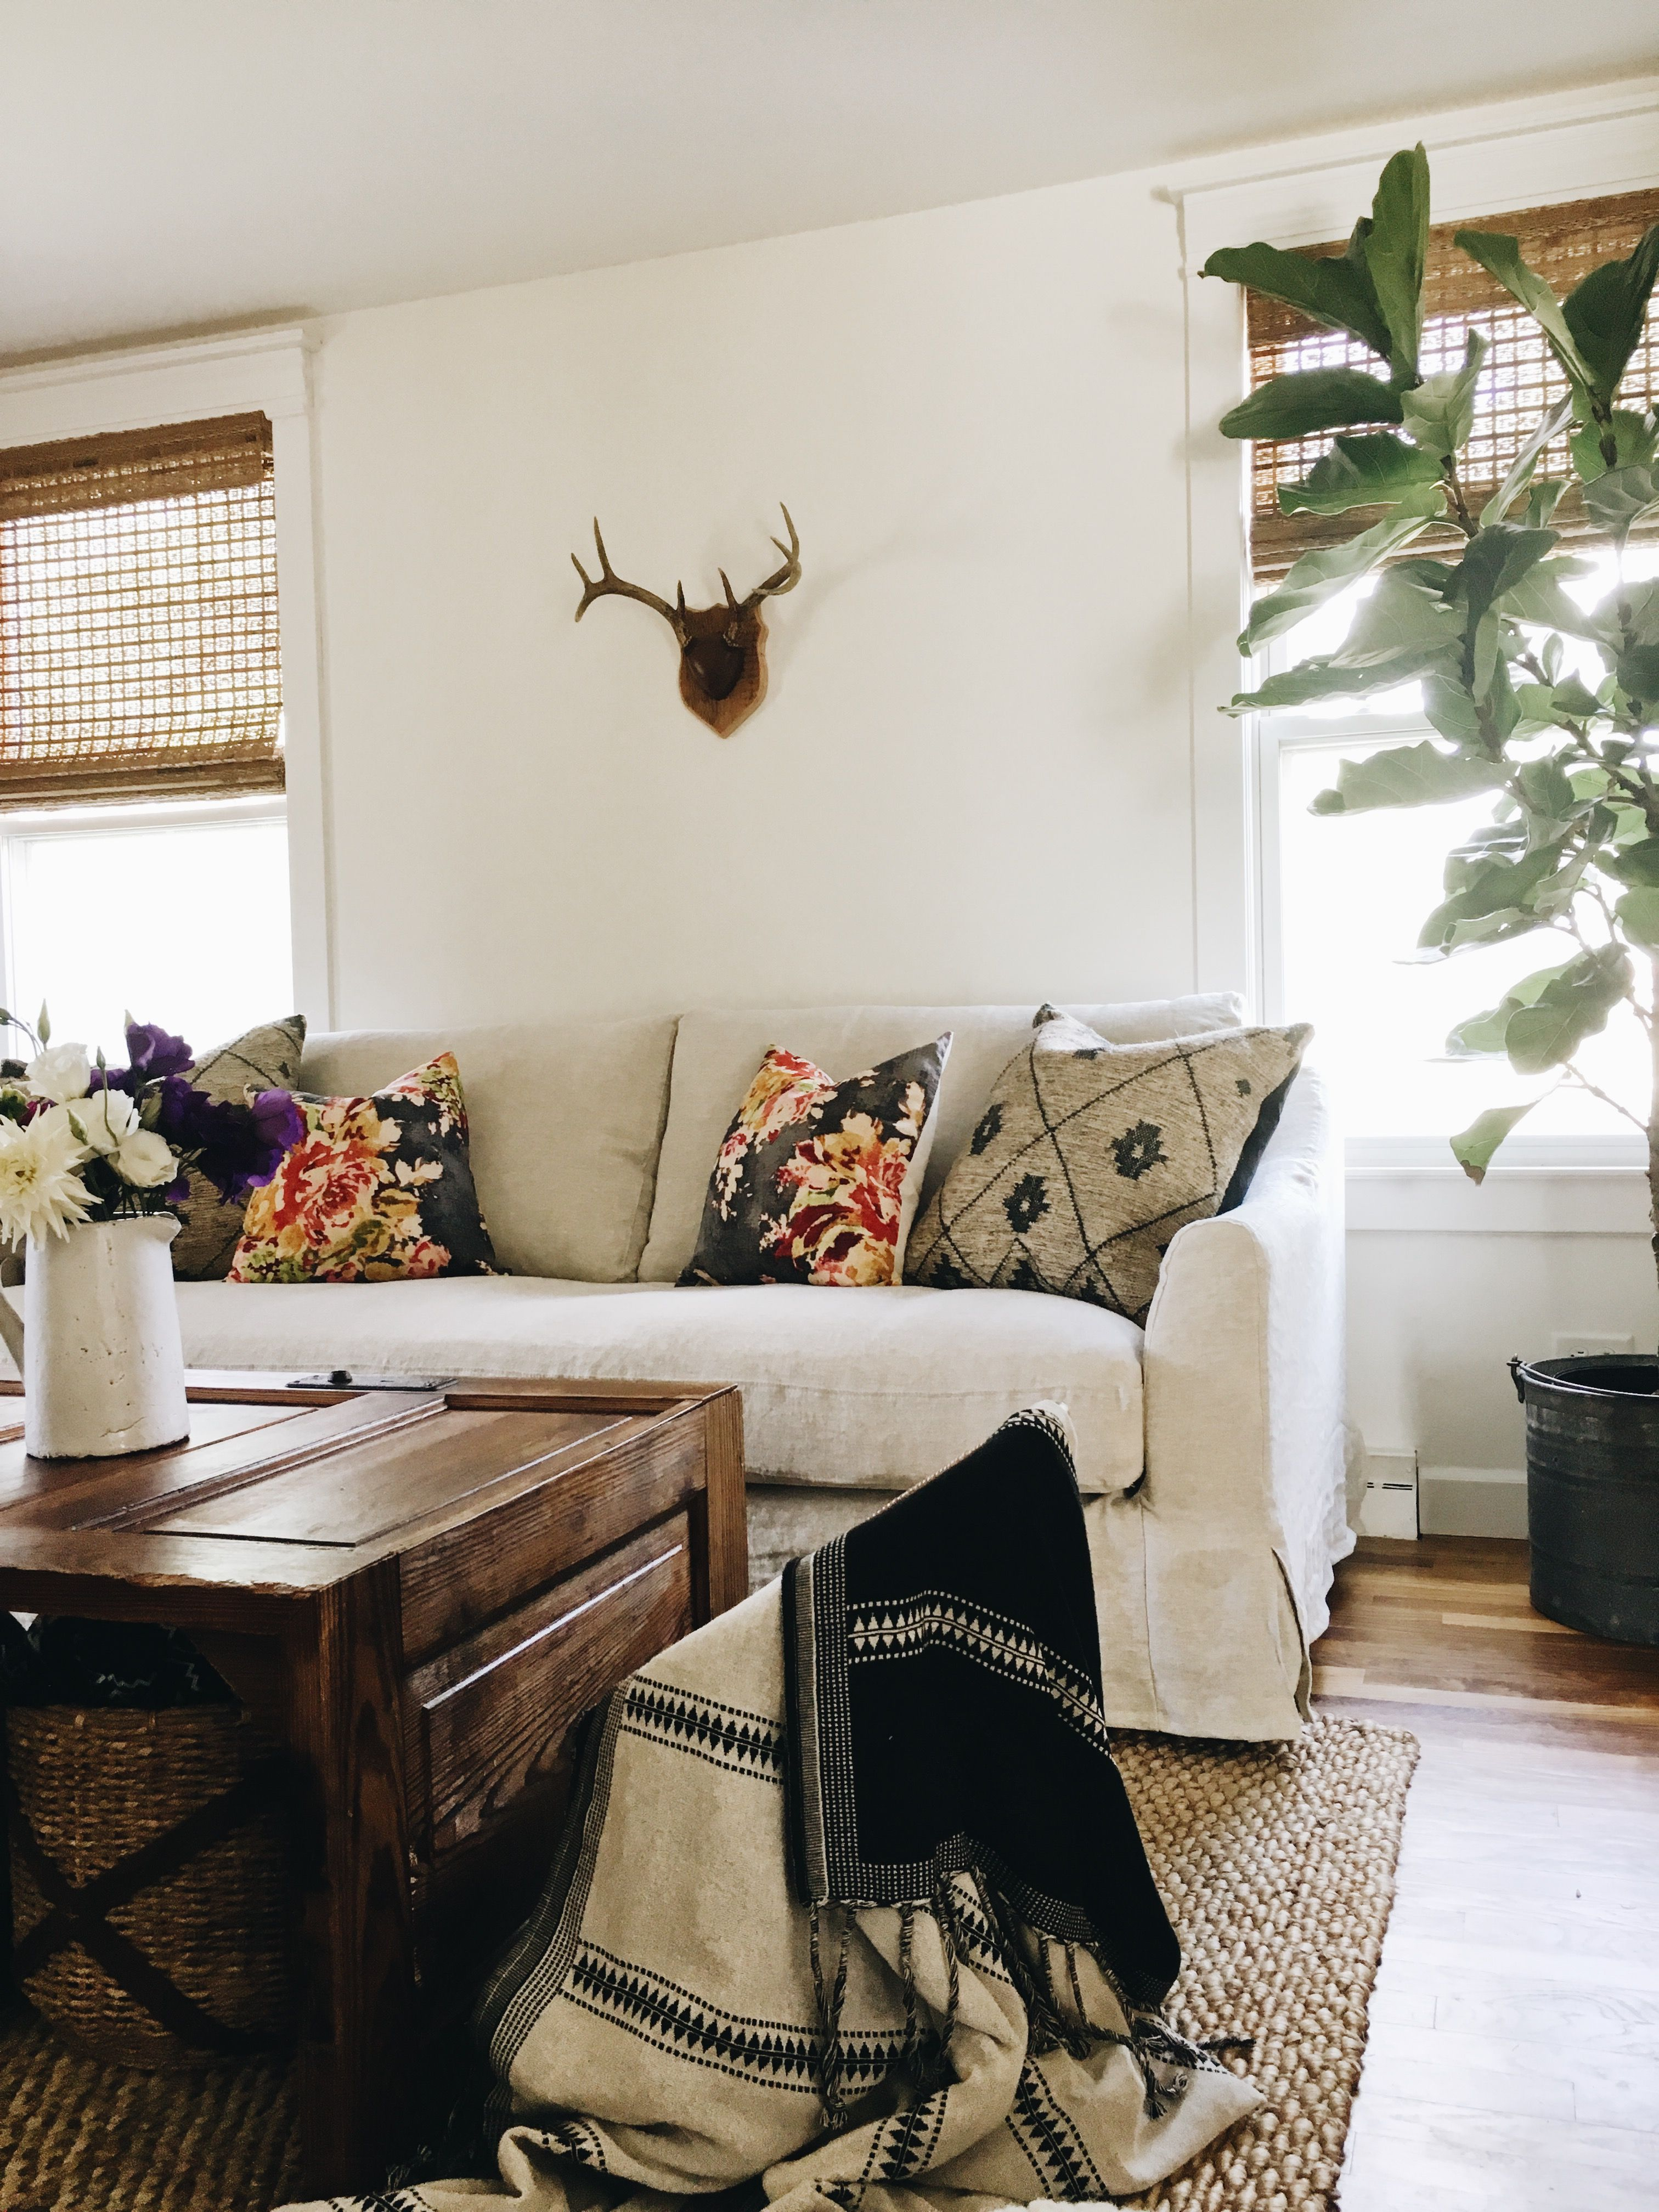 Rustic shabby chic vibes | The White Farmhouse blog updated her ...